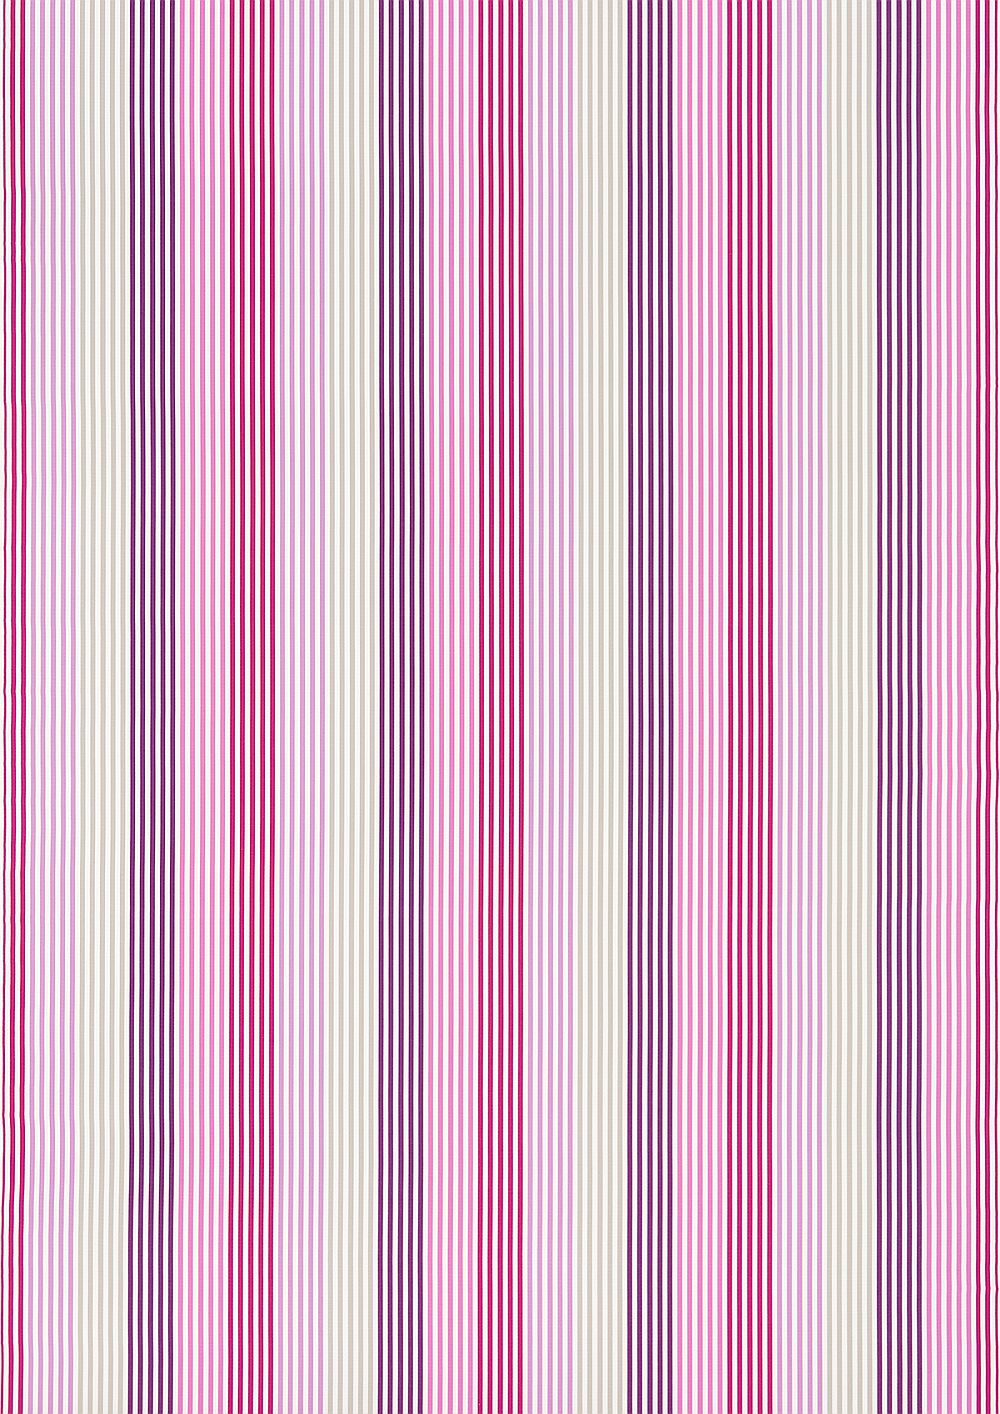 Boogie Woogie By Harlequin Wallpaper Direct